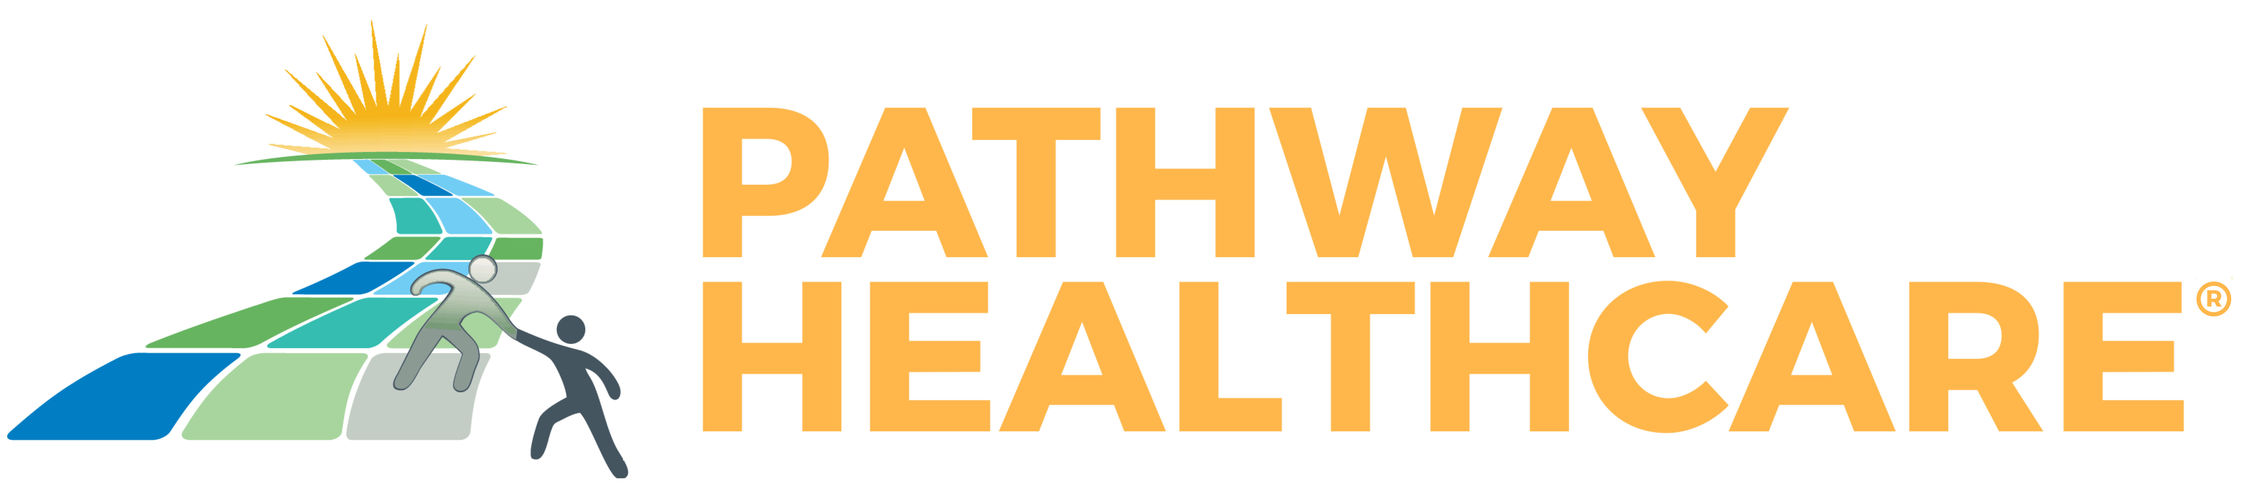 Pathway Healthcare